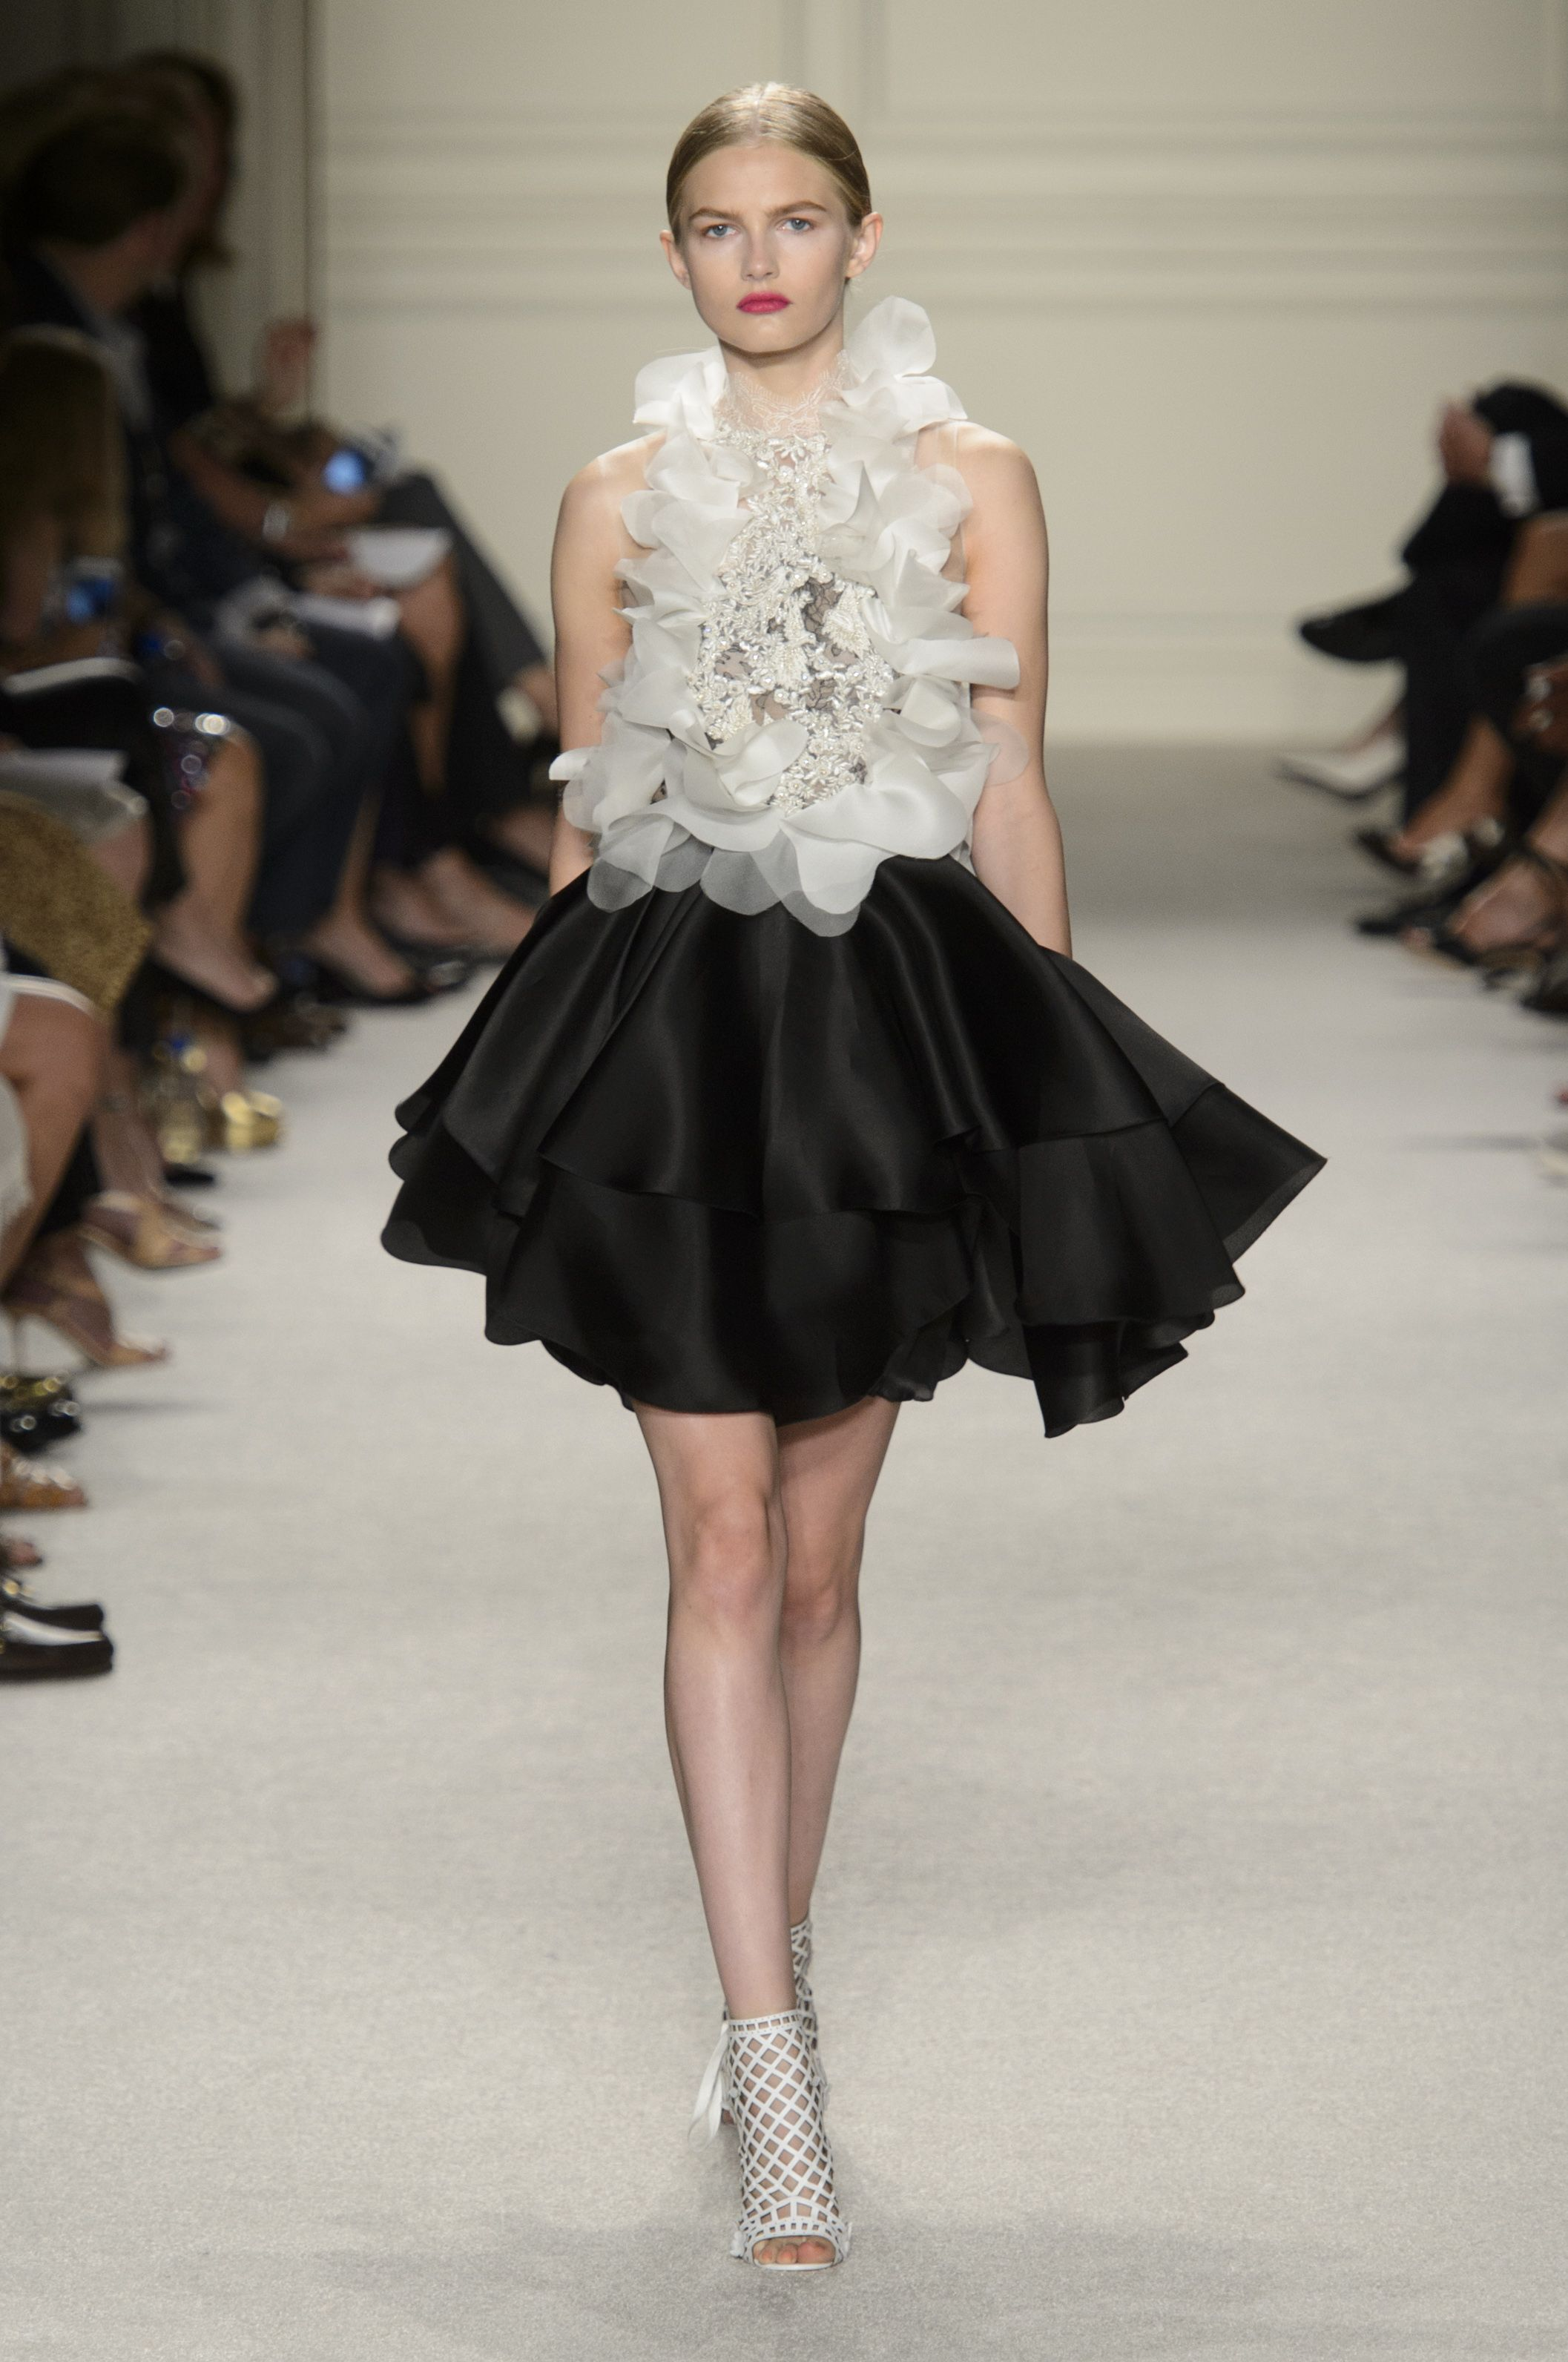 Black and white skirt 2-piece with ornamented top by Marchesa @ New York Fashion Week Spring Summer '16 #fashionweek #marchesa #rendezvousdelamode #couture #evening #twopiece #skirt #drappery #frill #bellskirt #ornament